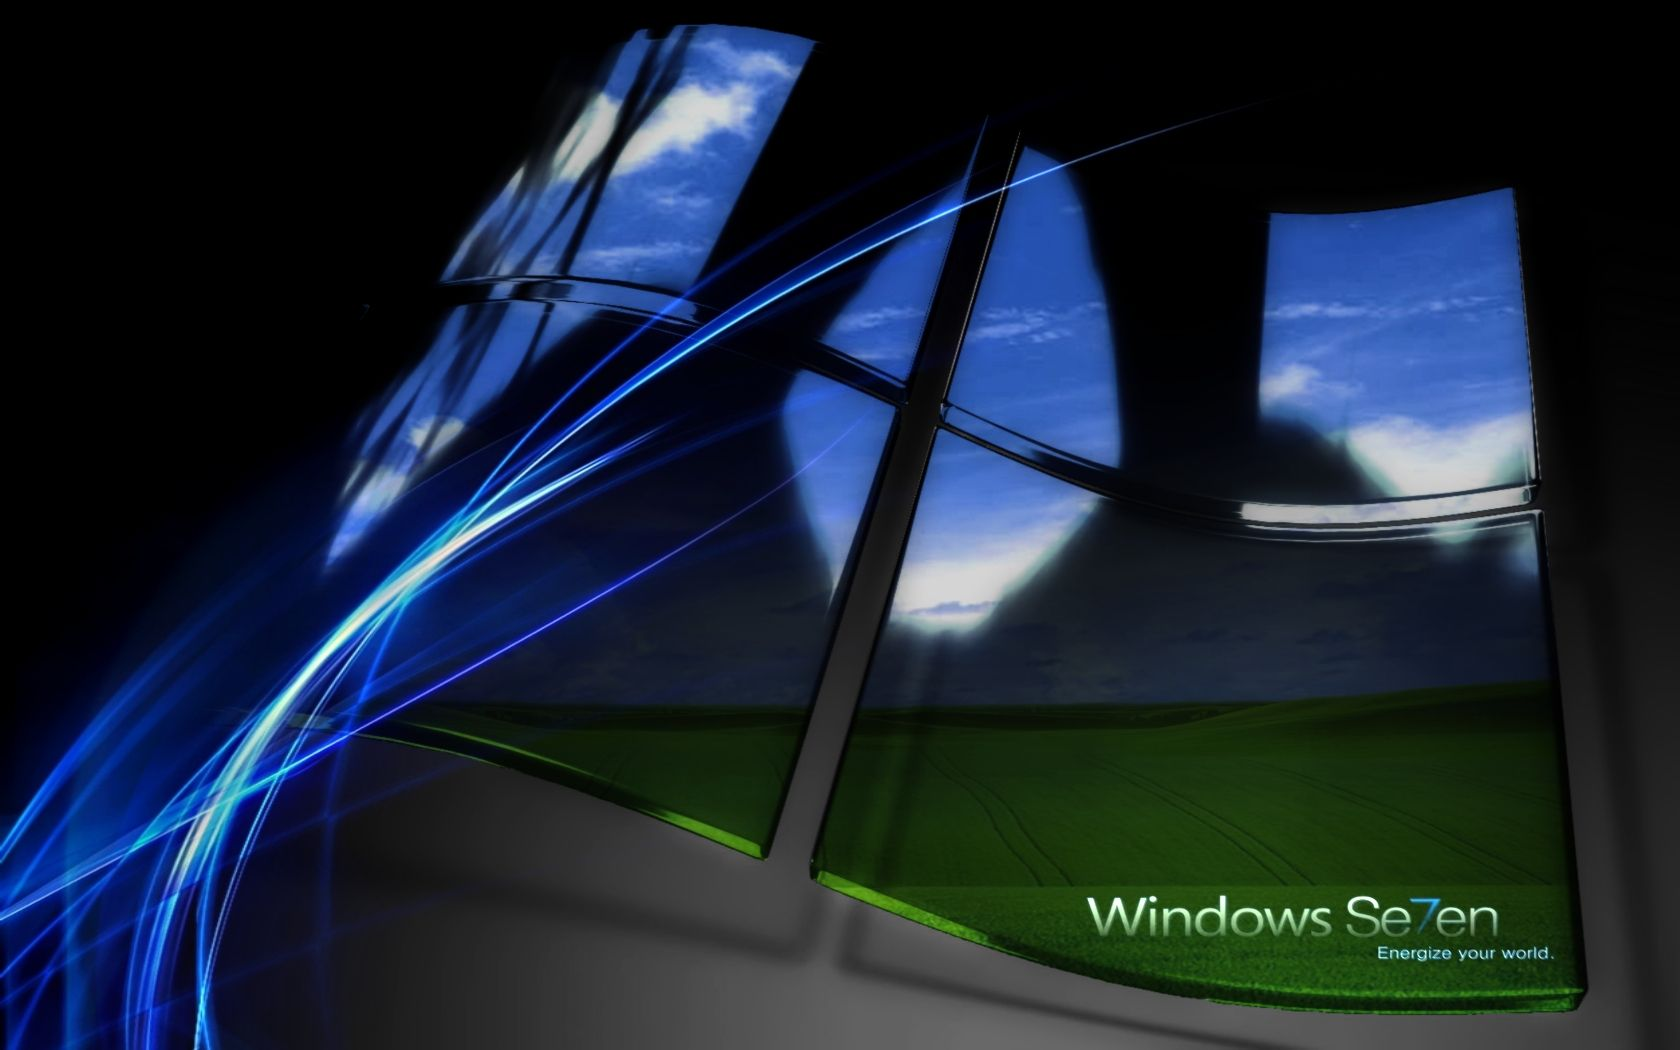 ewallpapershub provide the latest image gallery of windows 7